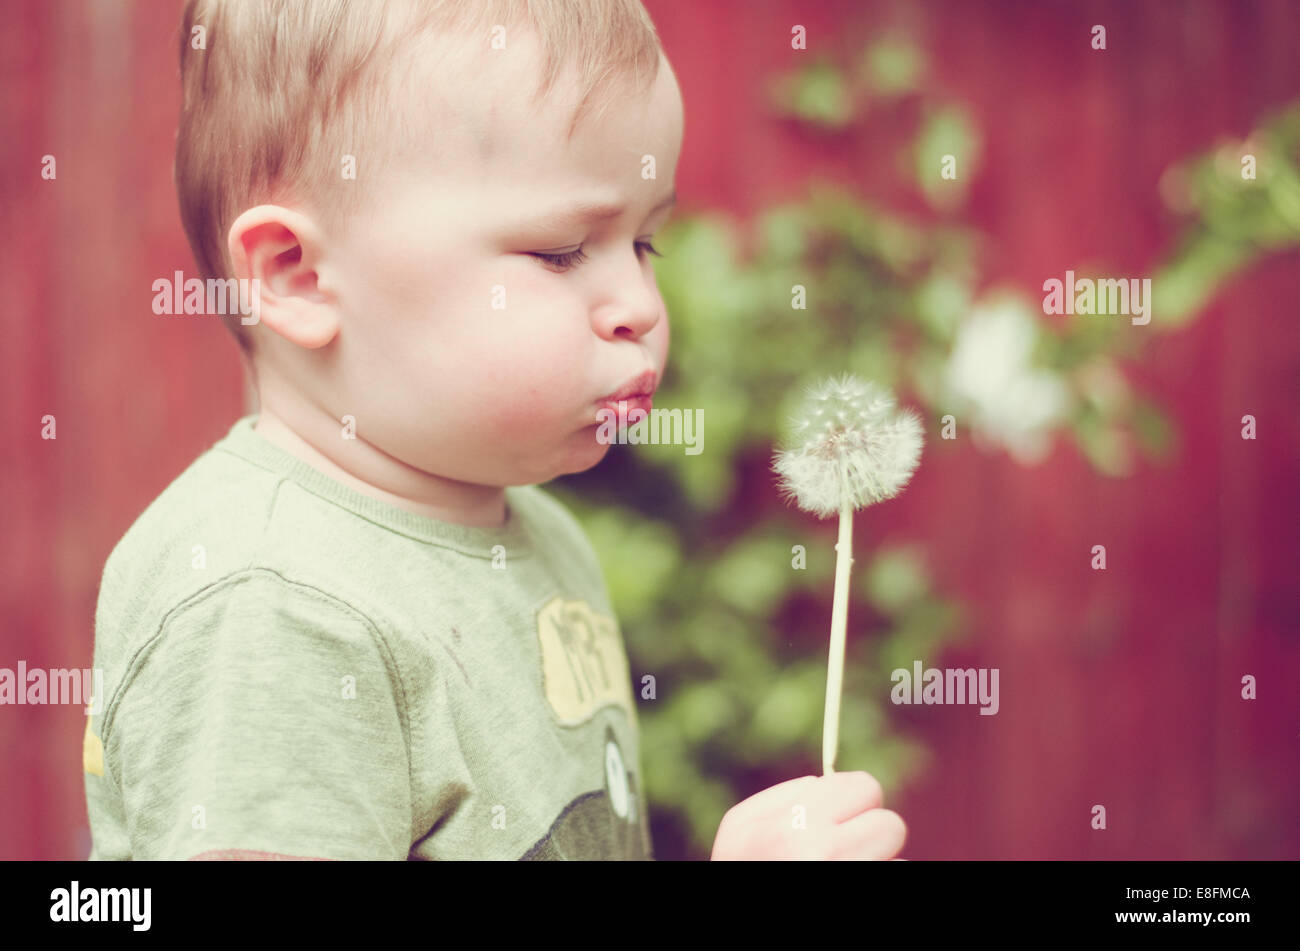 Baby boy blowing dandelion clock - Stock Image